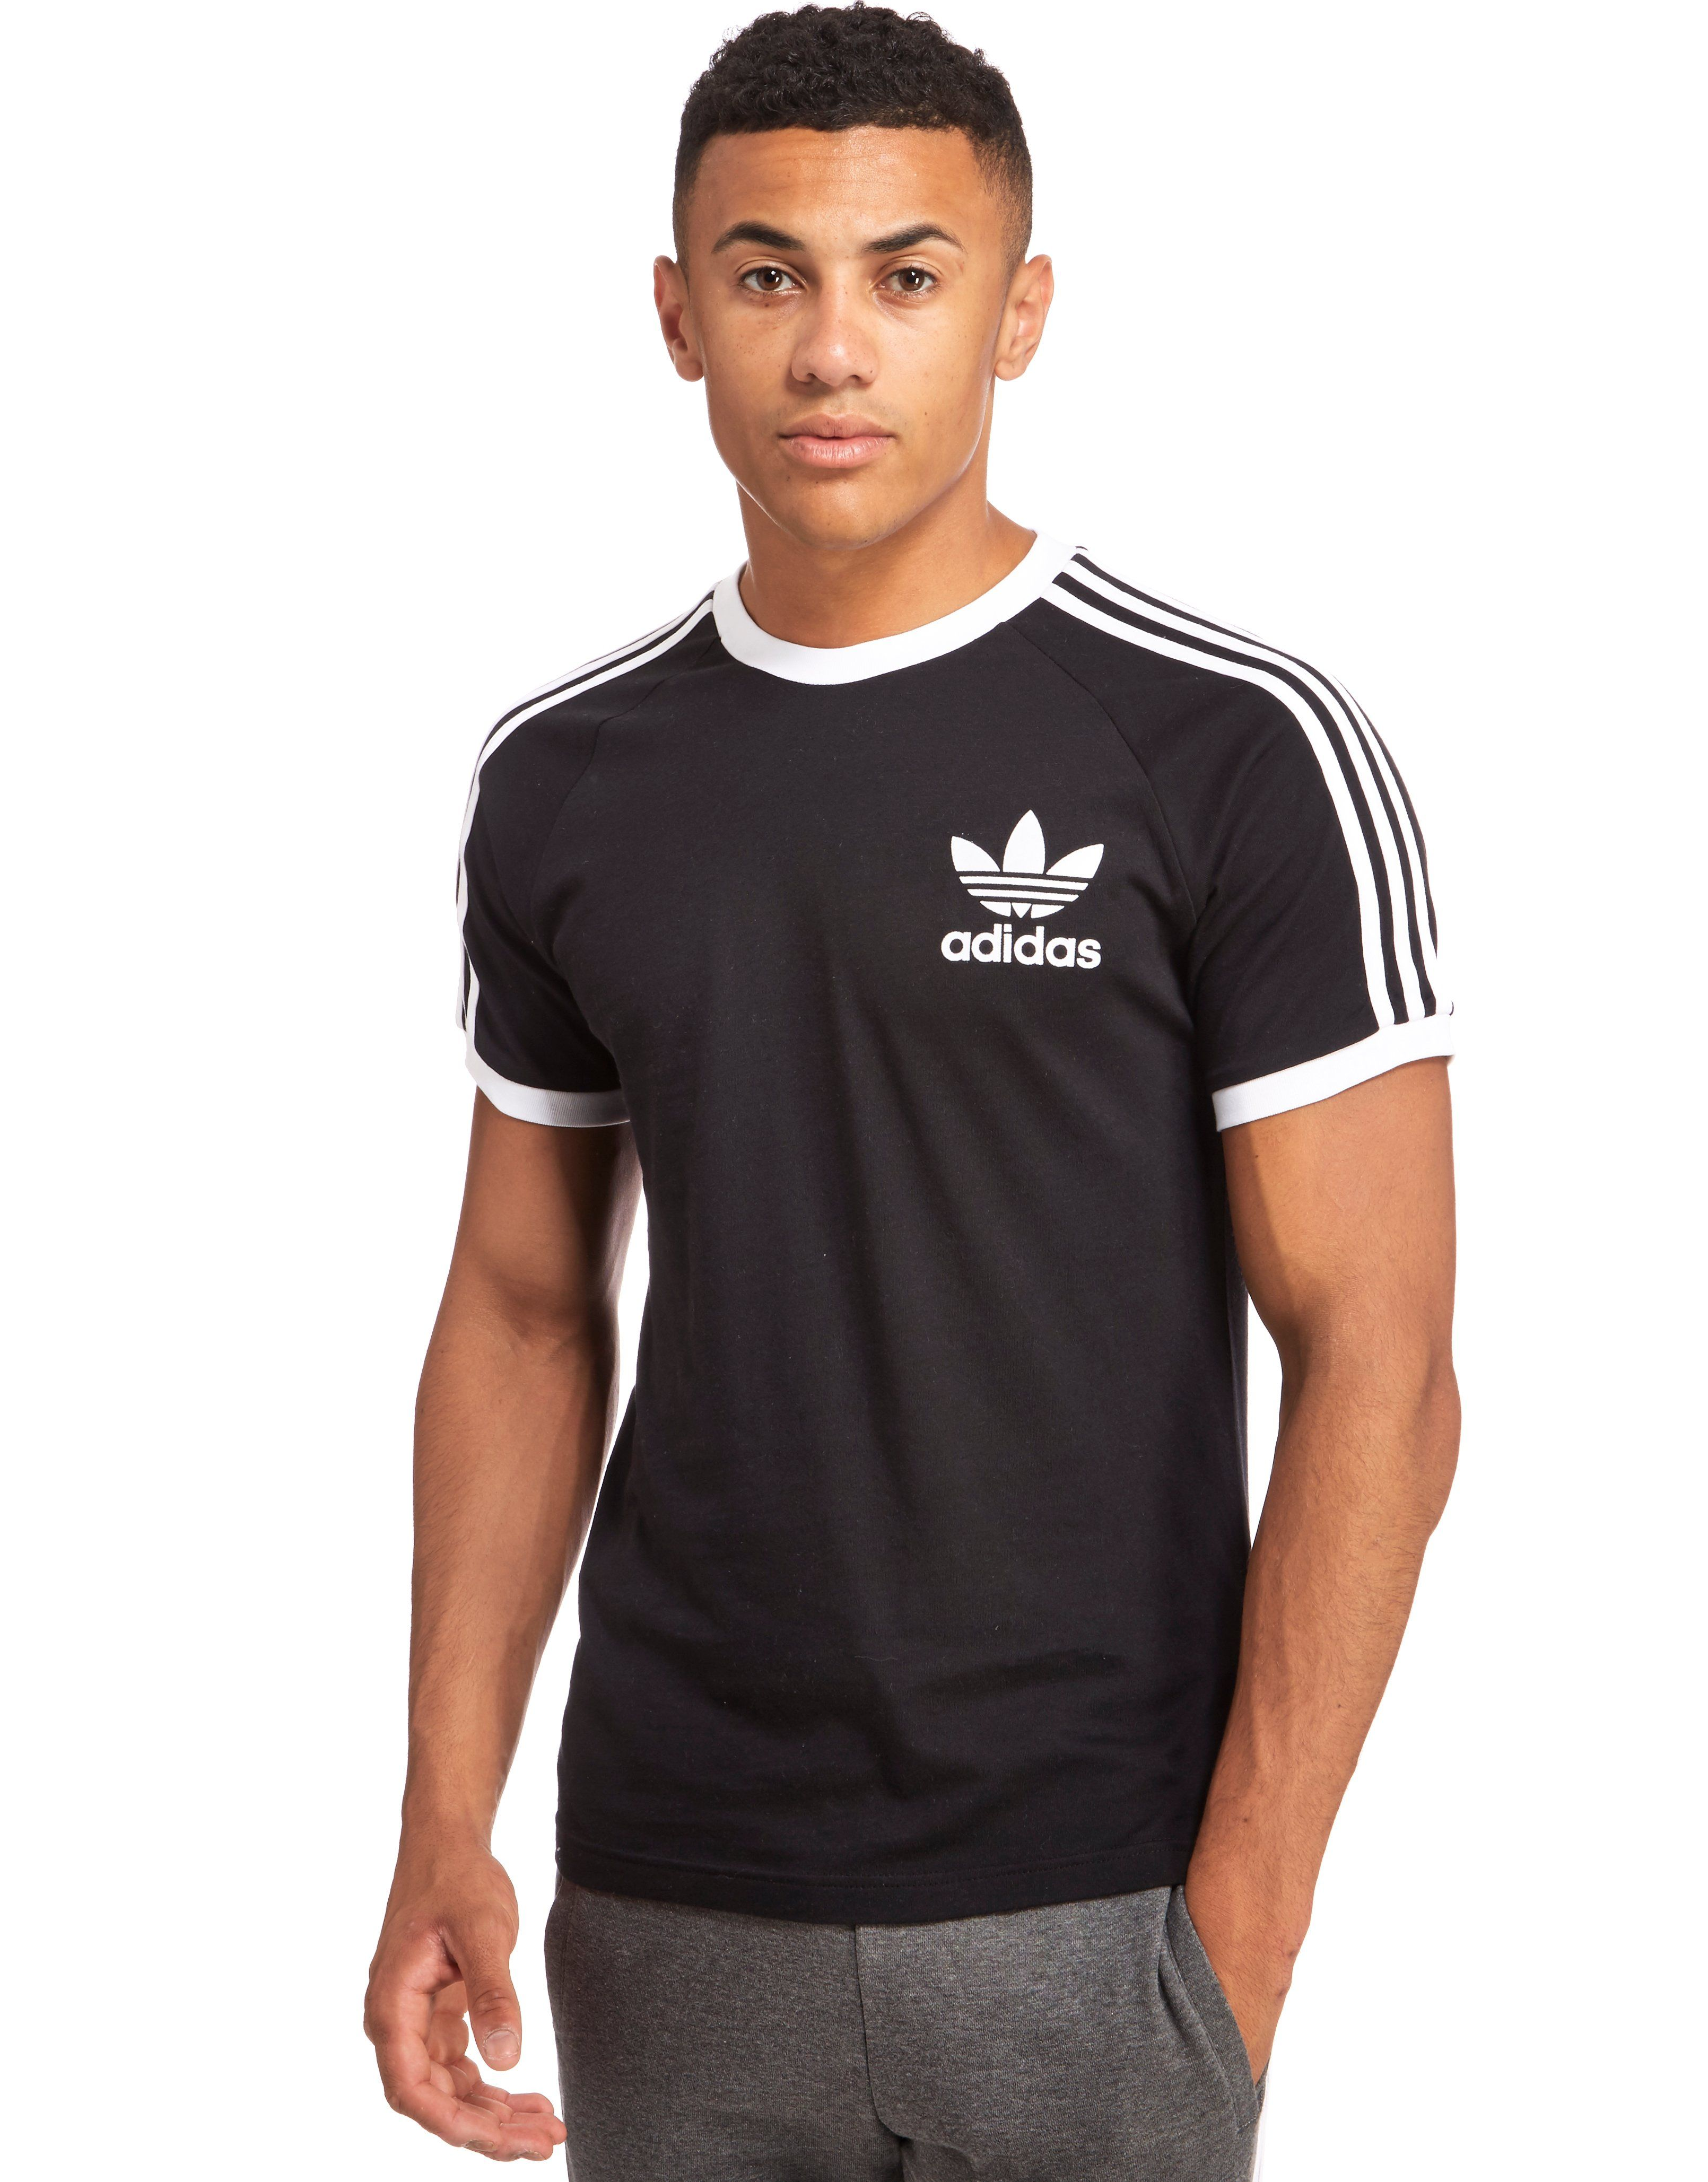 85%OFF adidas Originals California T-Shirt | JD Sports